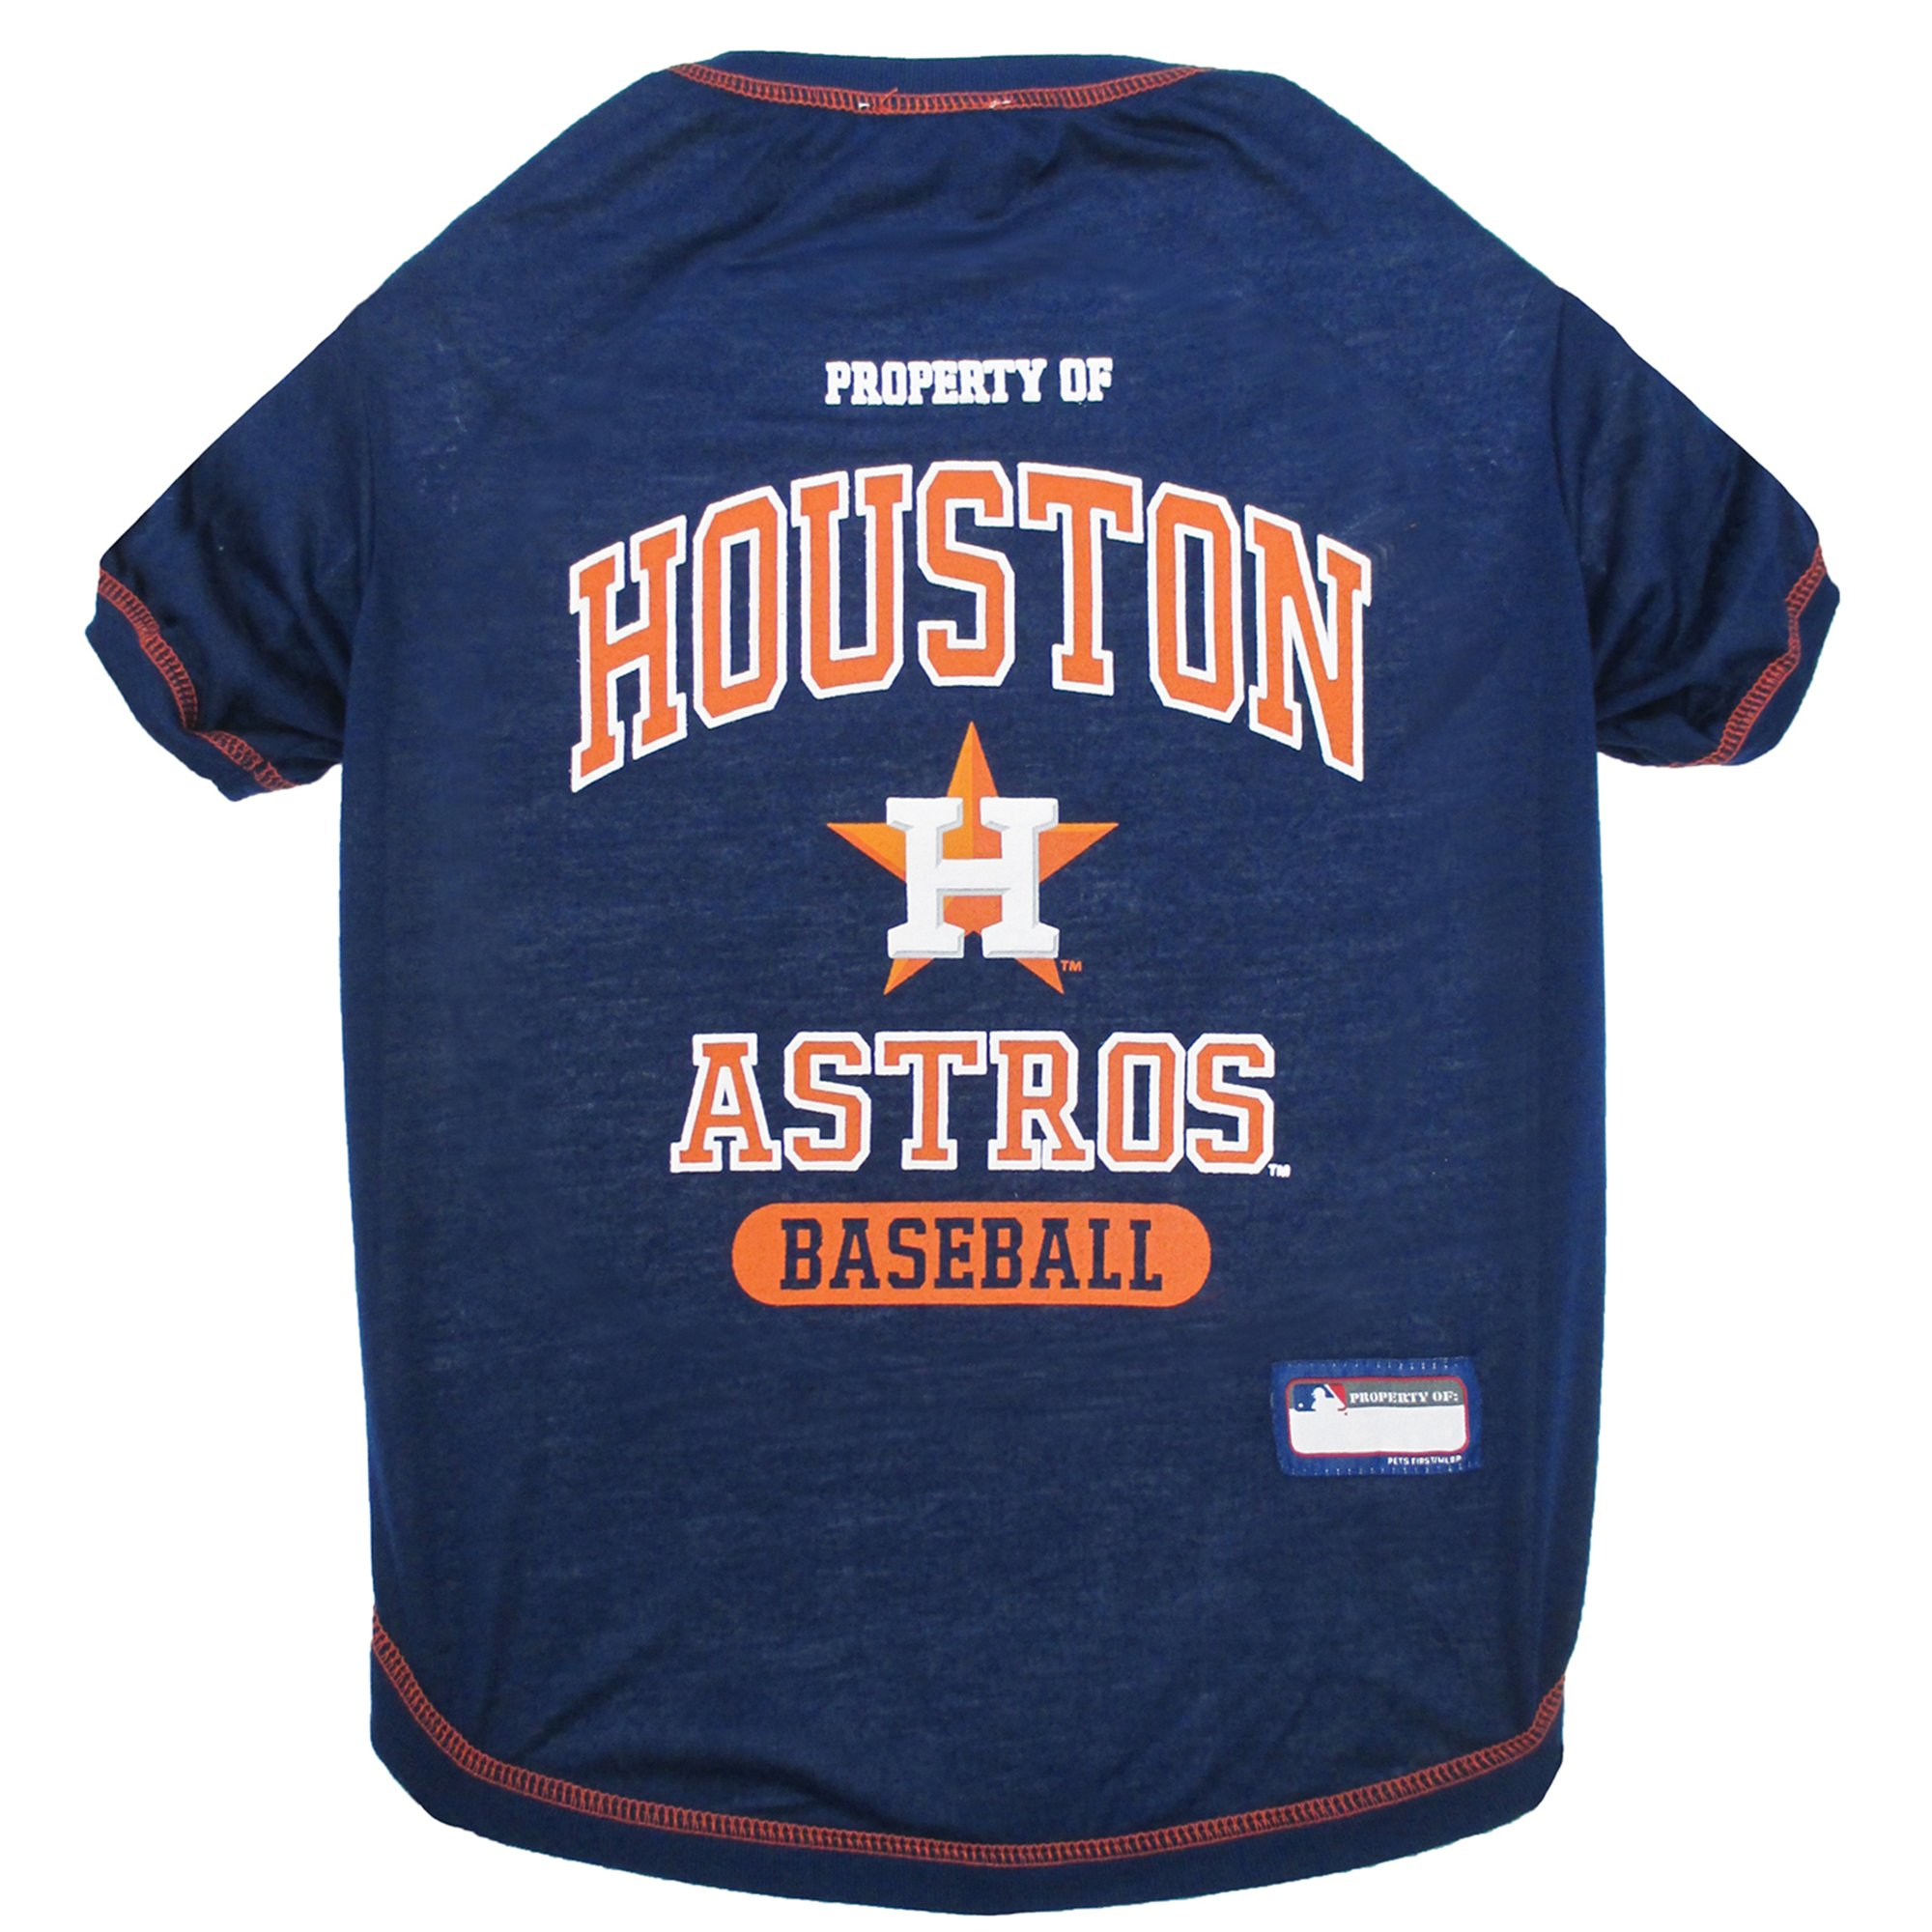 5357af9cf943d Pets First Houston Astros T-Shirt | Petco